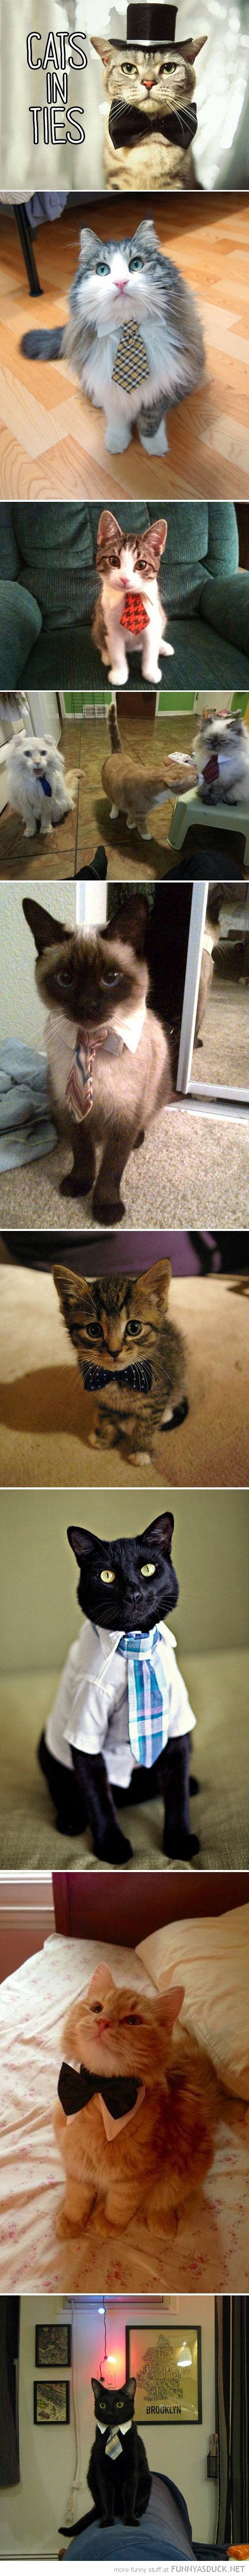 cats in ties animals funny pics pictures pic picture image photo images photos lol